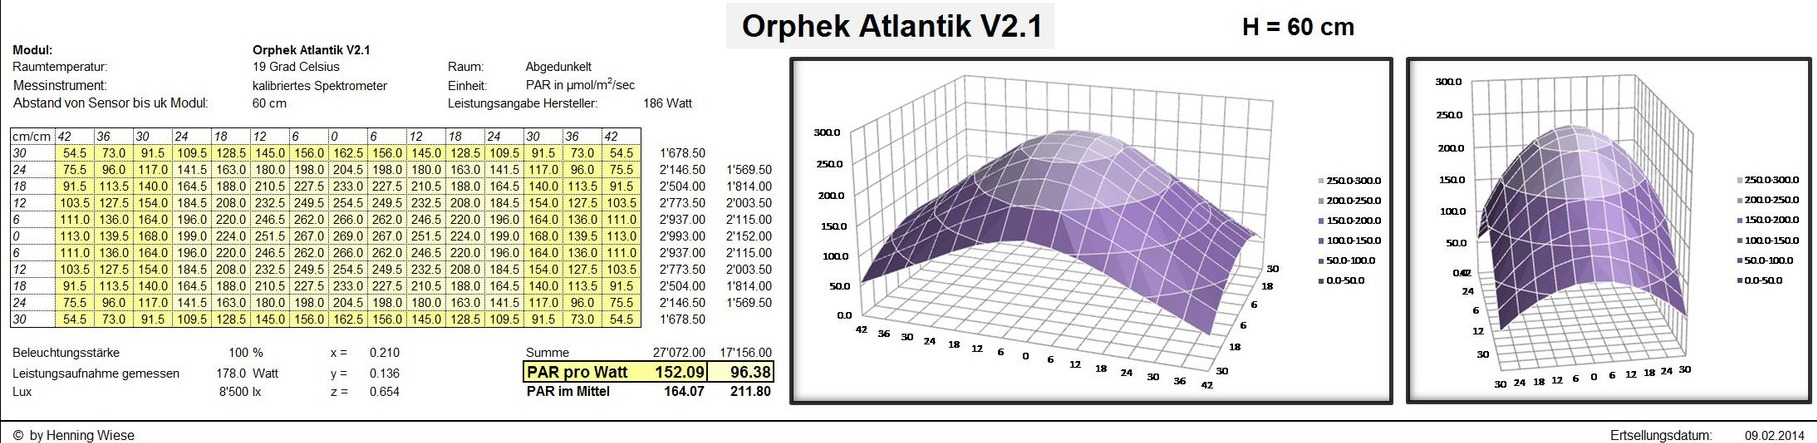 Orphek ATLANTIK V2.1 LED照明燈具-PAR每瓦MAP-PAR